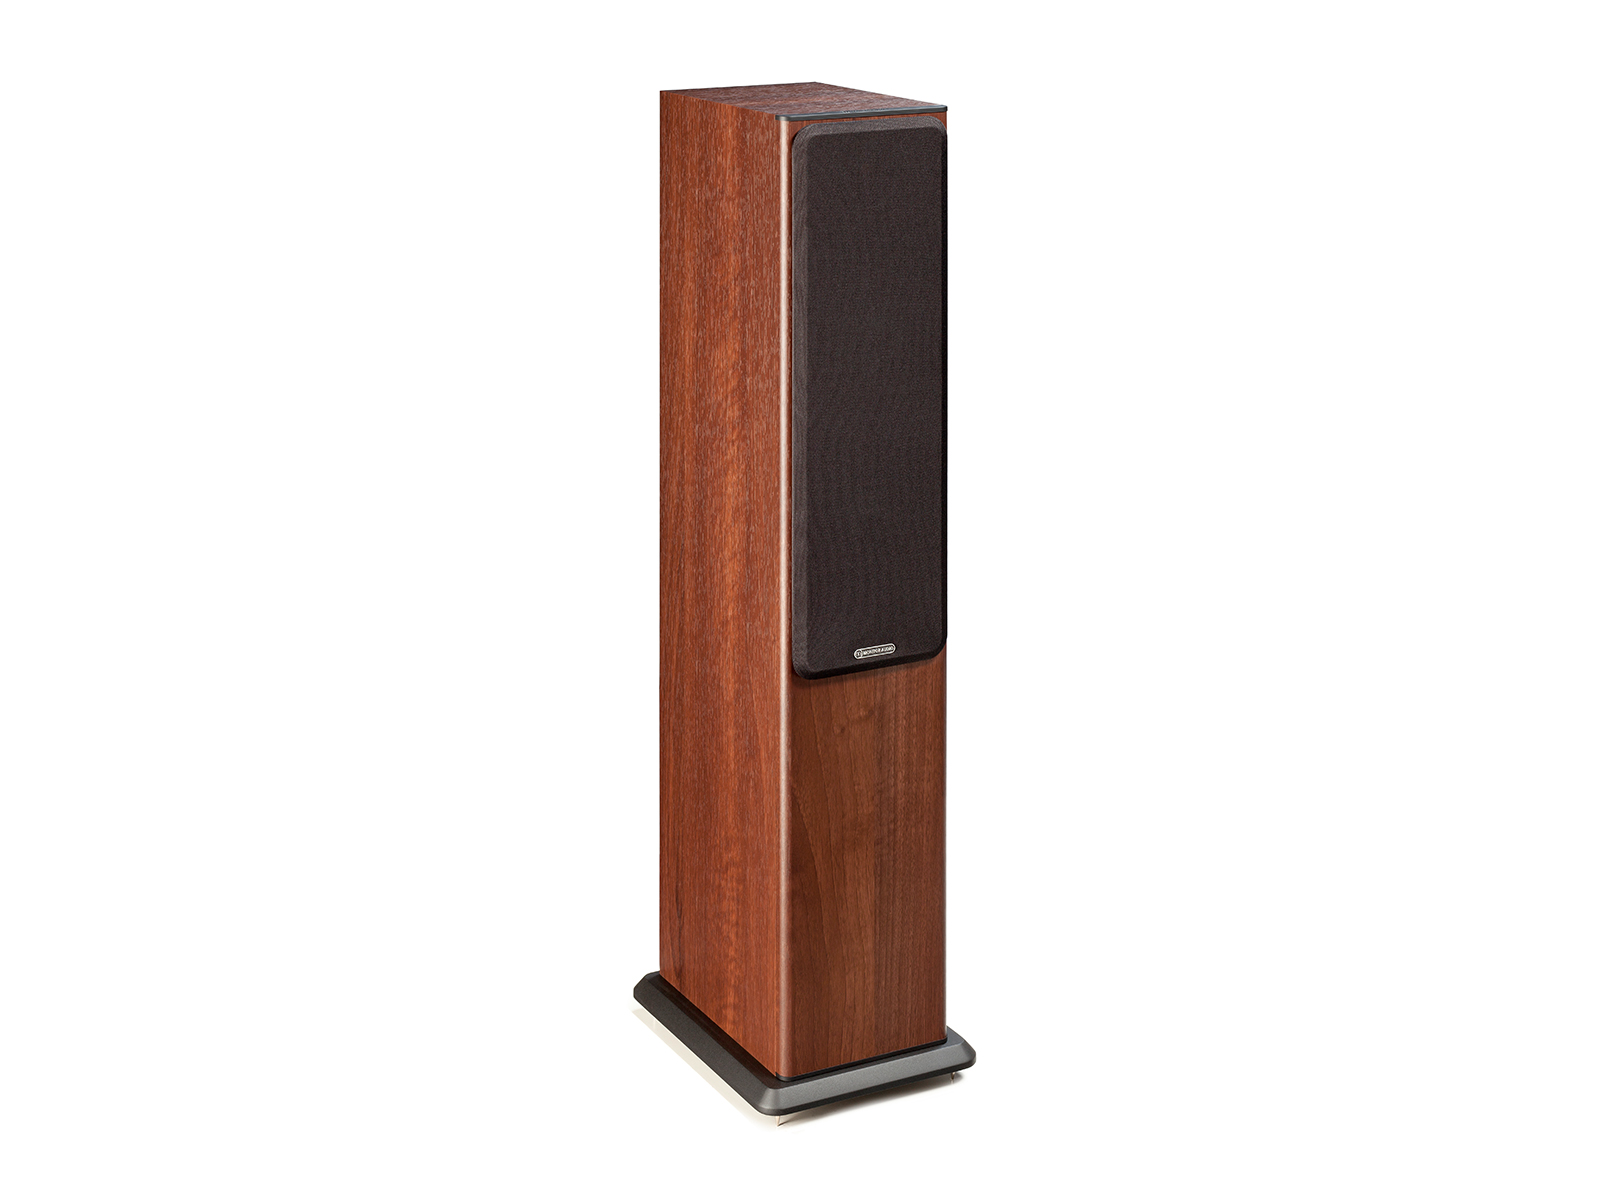 Bronze 5, floorstanding speakers, featuring a grille and a walnut vinyl finish.